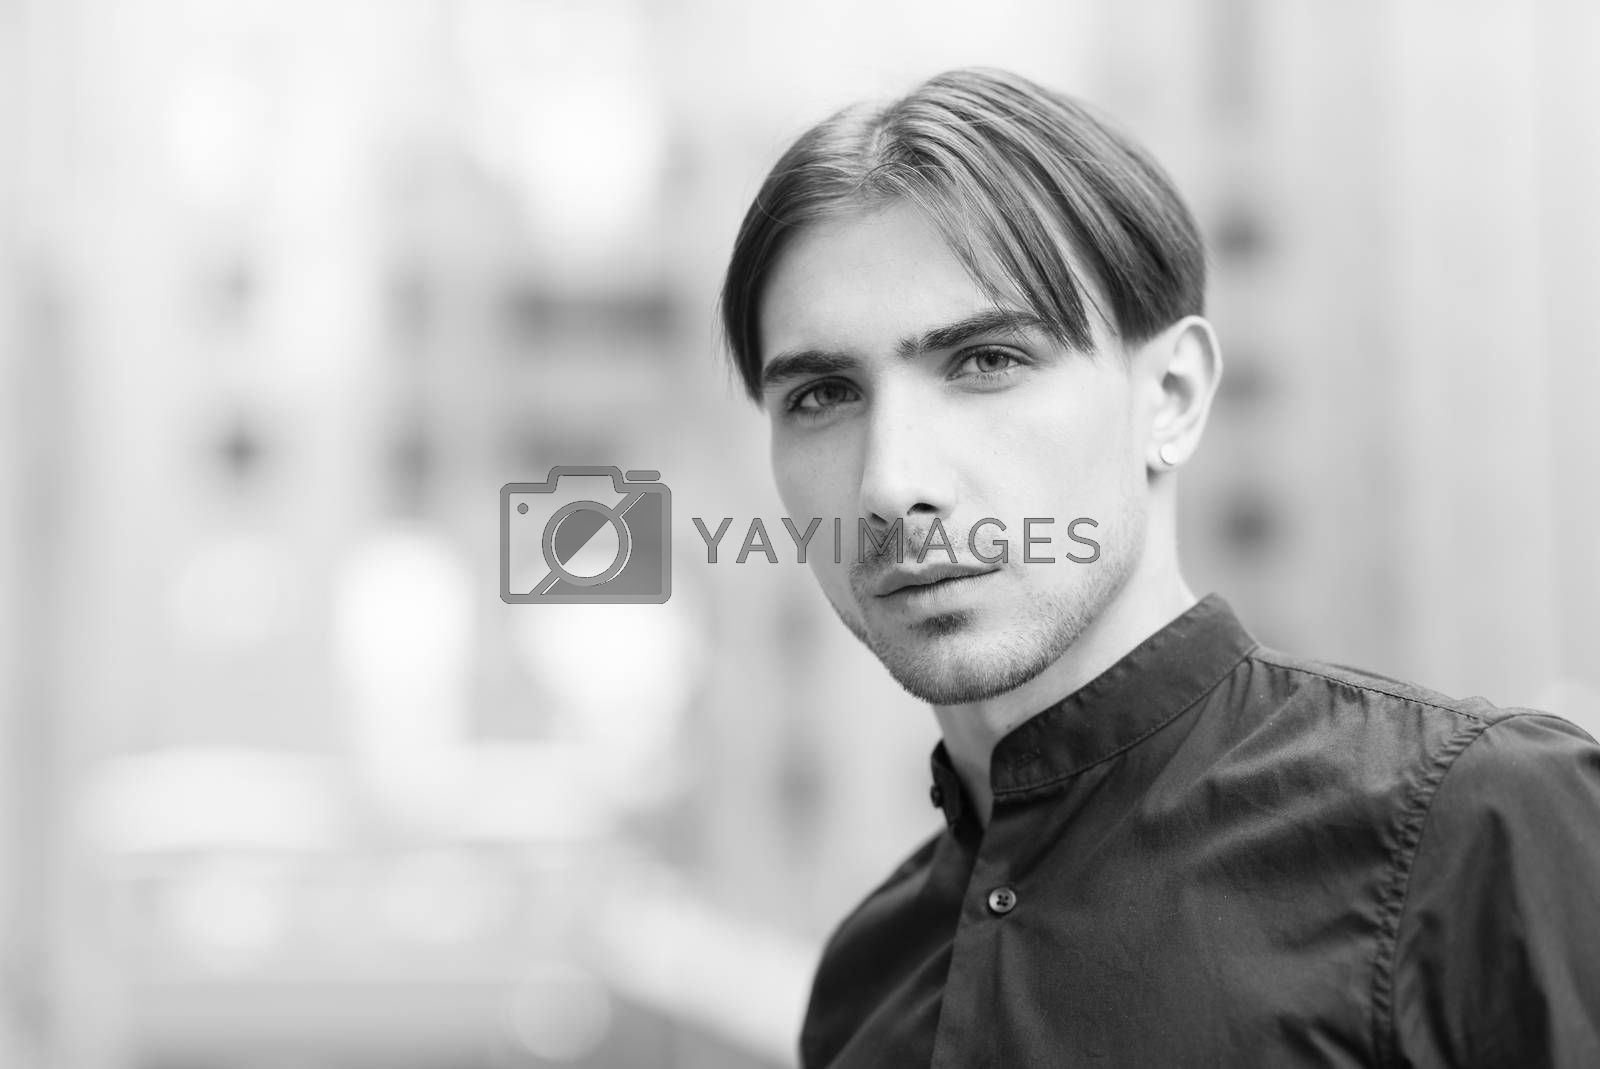 Portrait of a gay man - member of the LGBTQ community by day. Black and white photo. BW